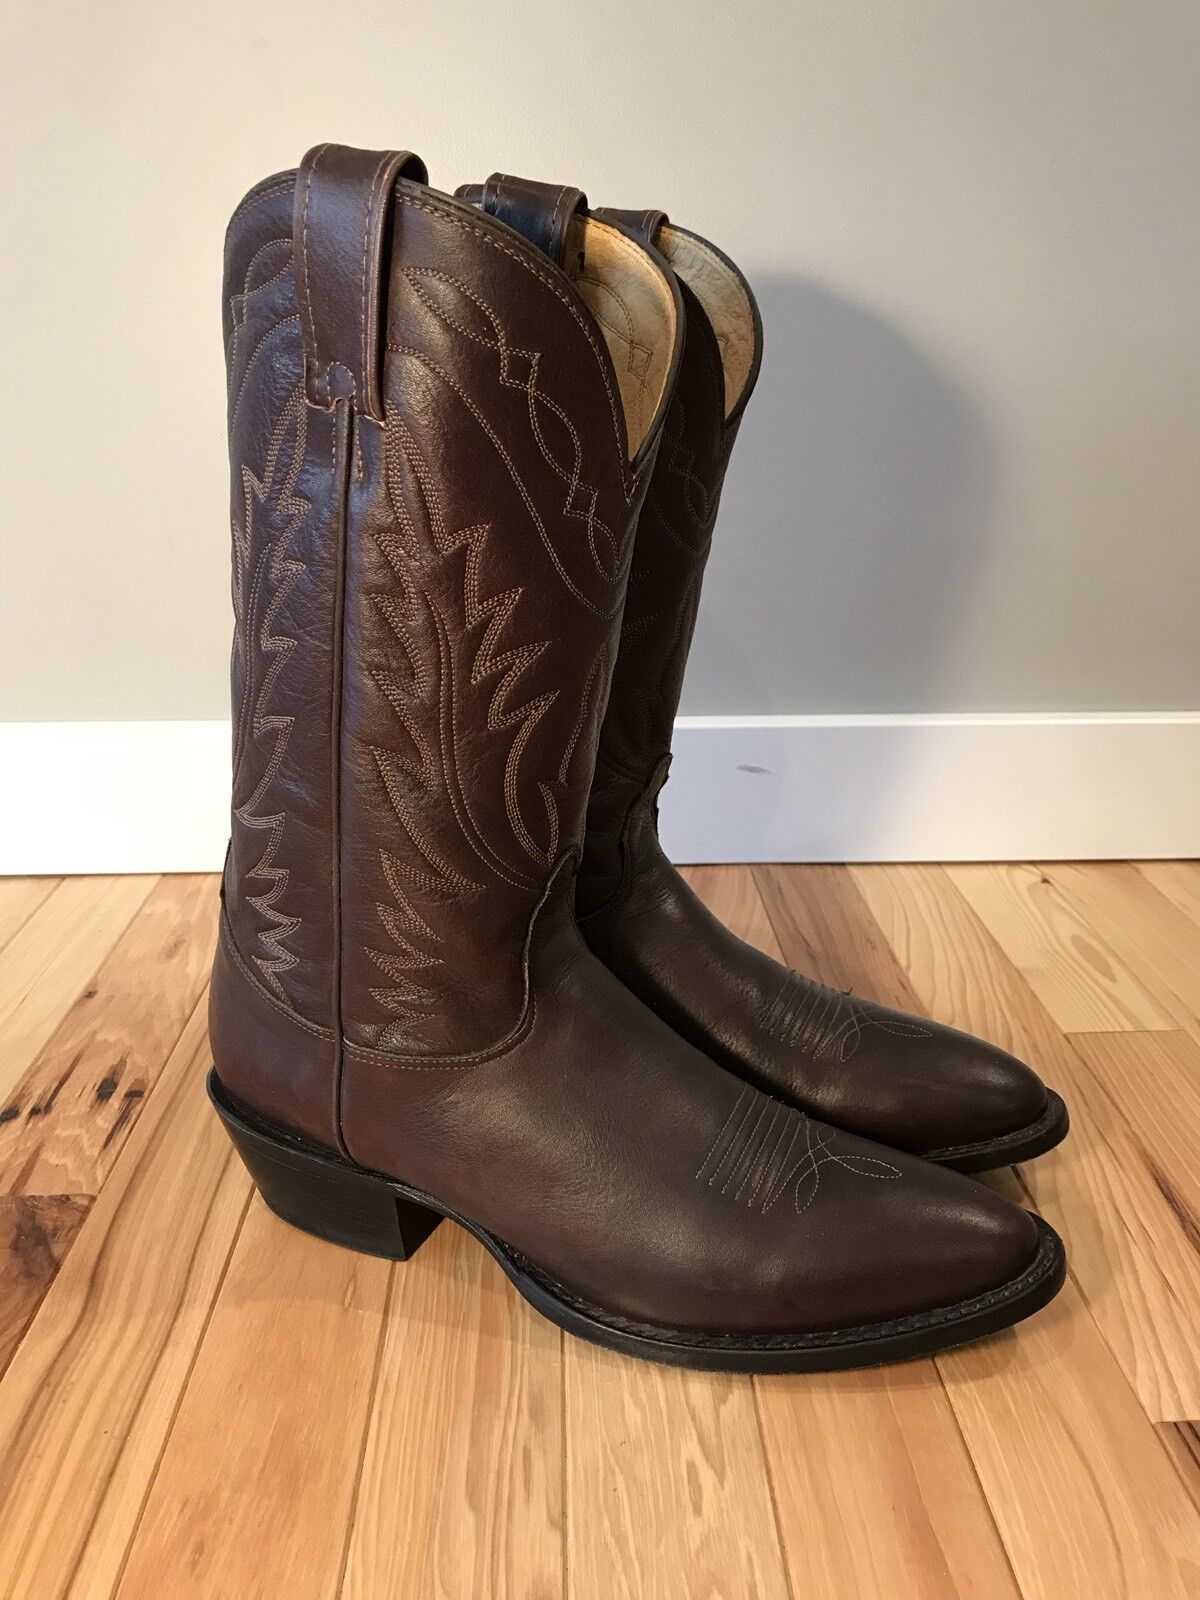 Nocona Marronee Leather Deertan Western Cowboy  stivali MD2401 Mens 9.5 A Made in USA  consegna veloce